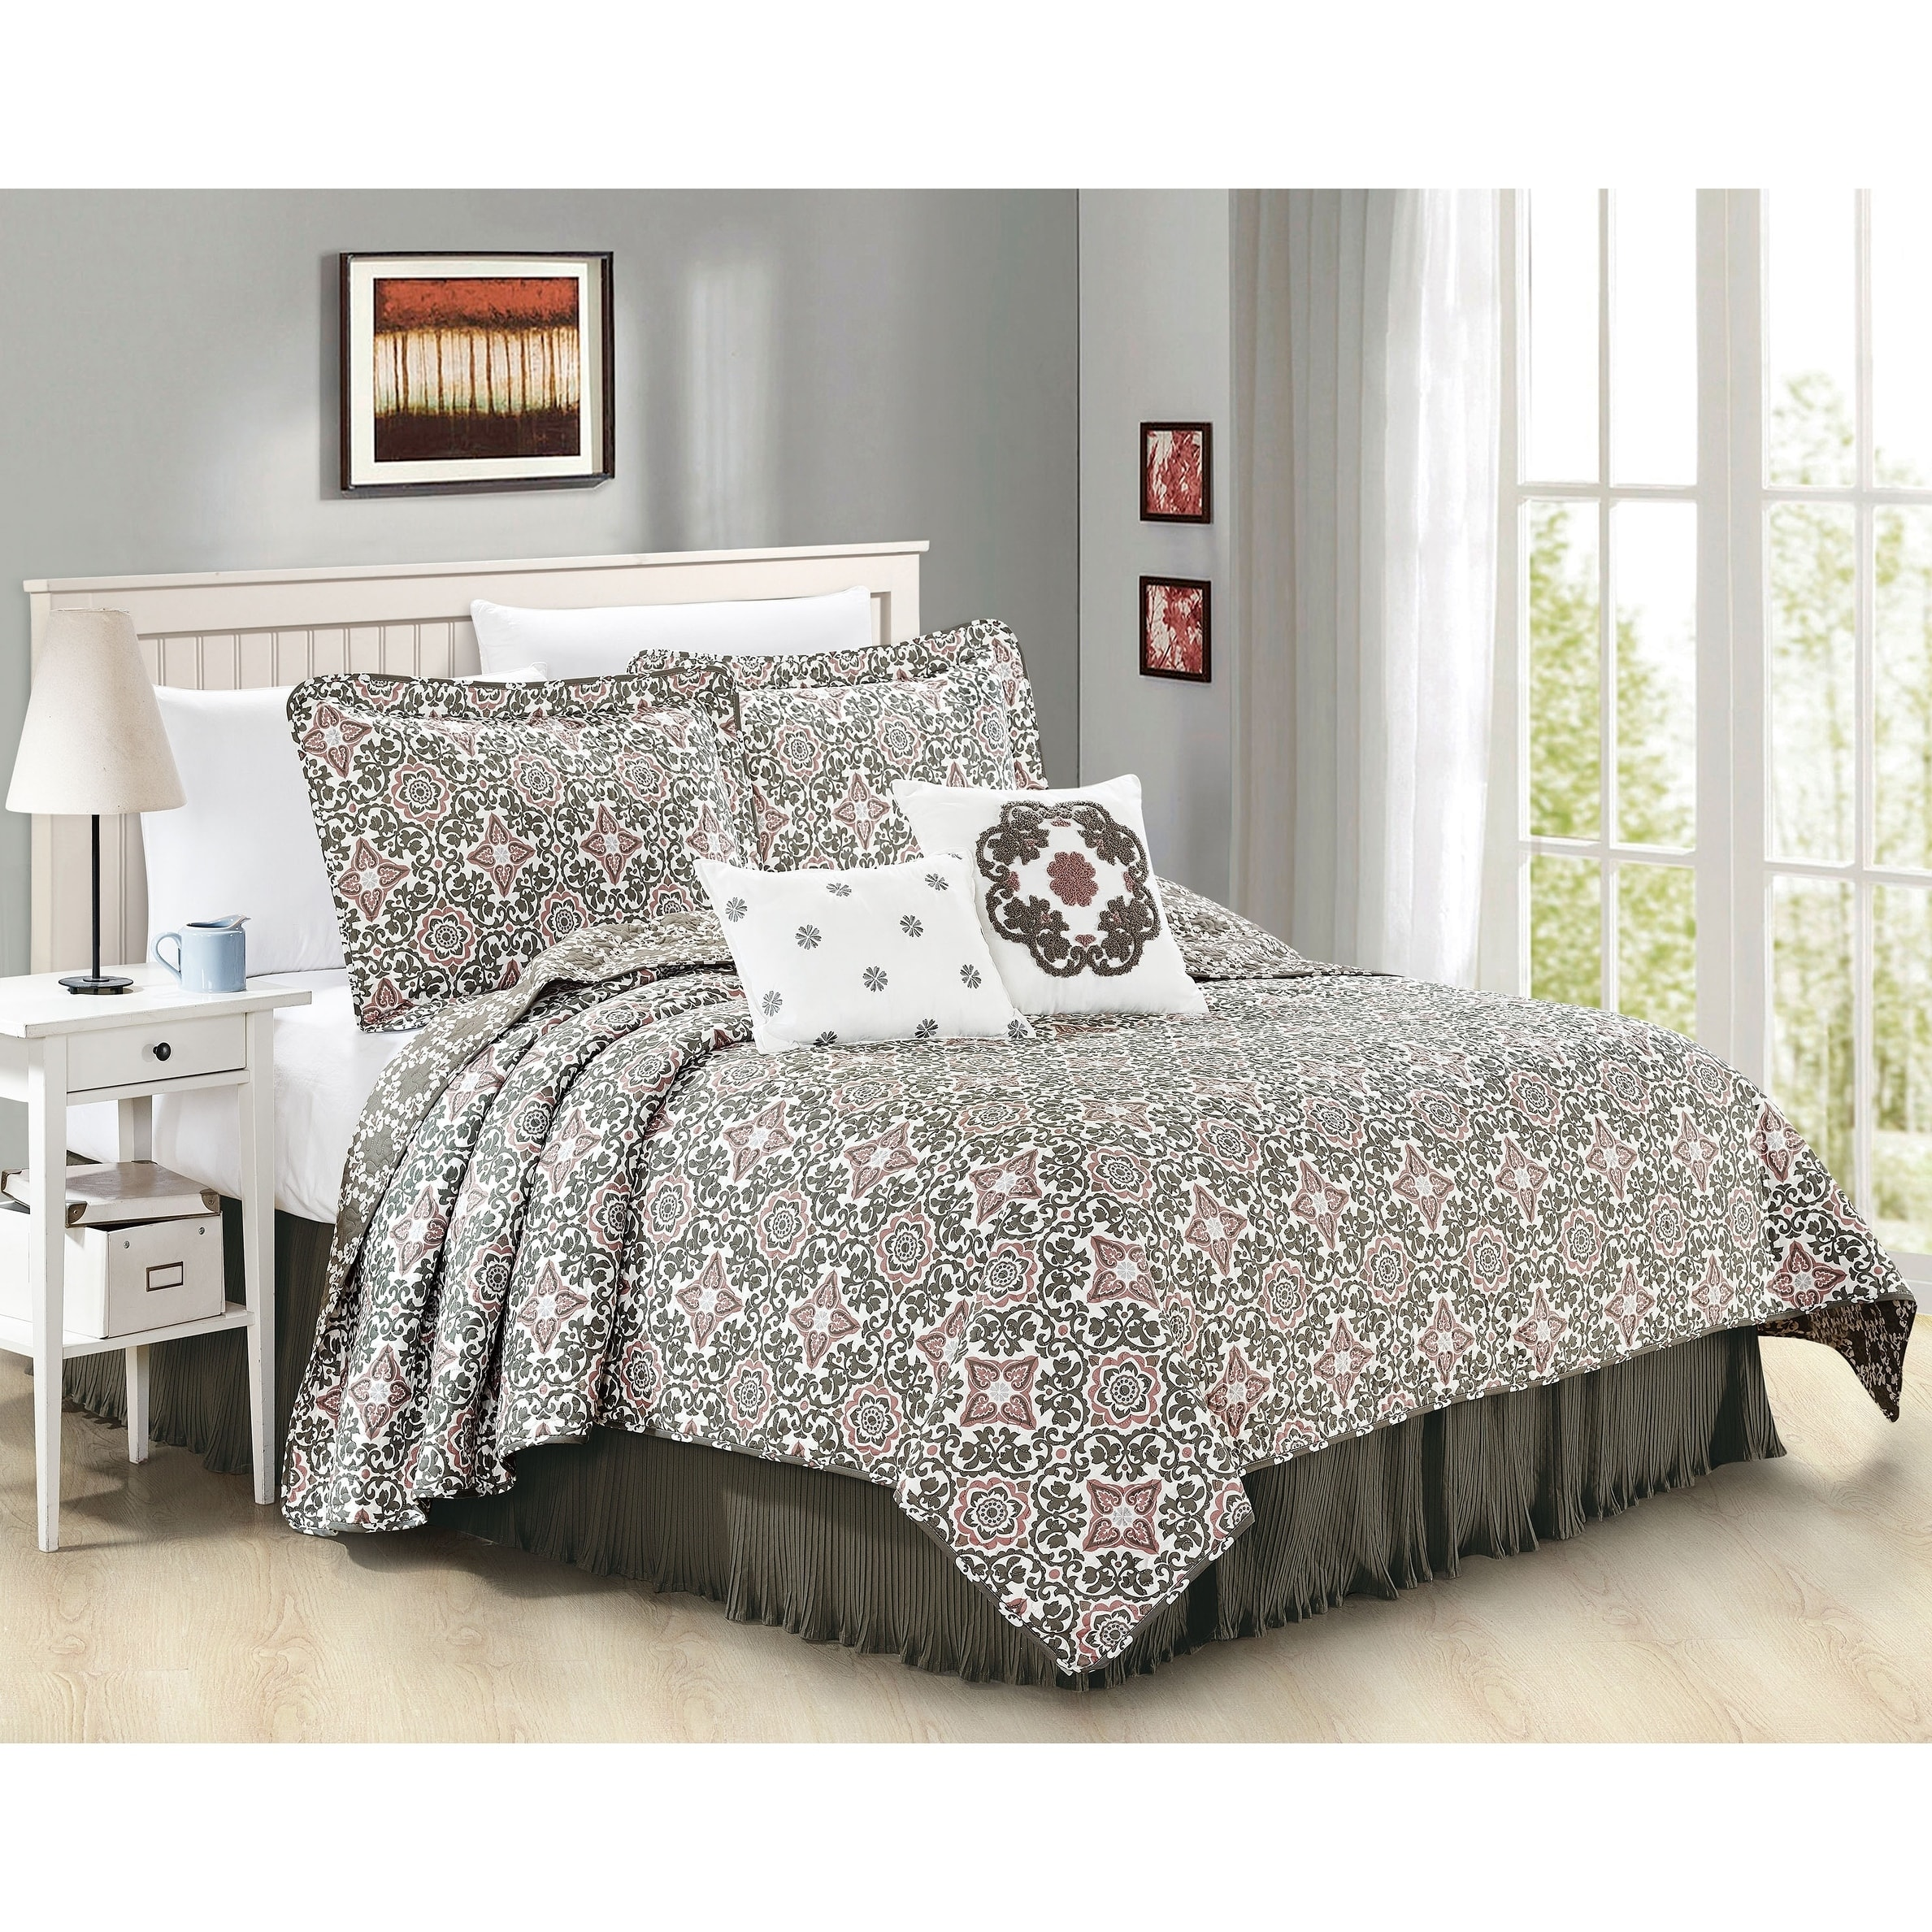 Serenta  6 Piece Coventry Printed Microfiber Quilts Coverlet Set